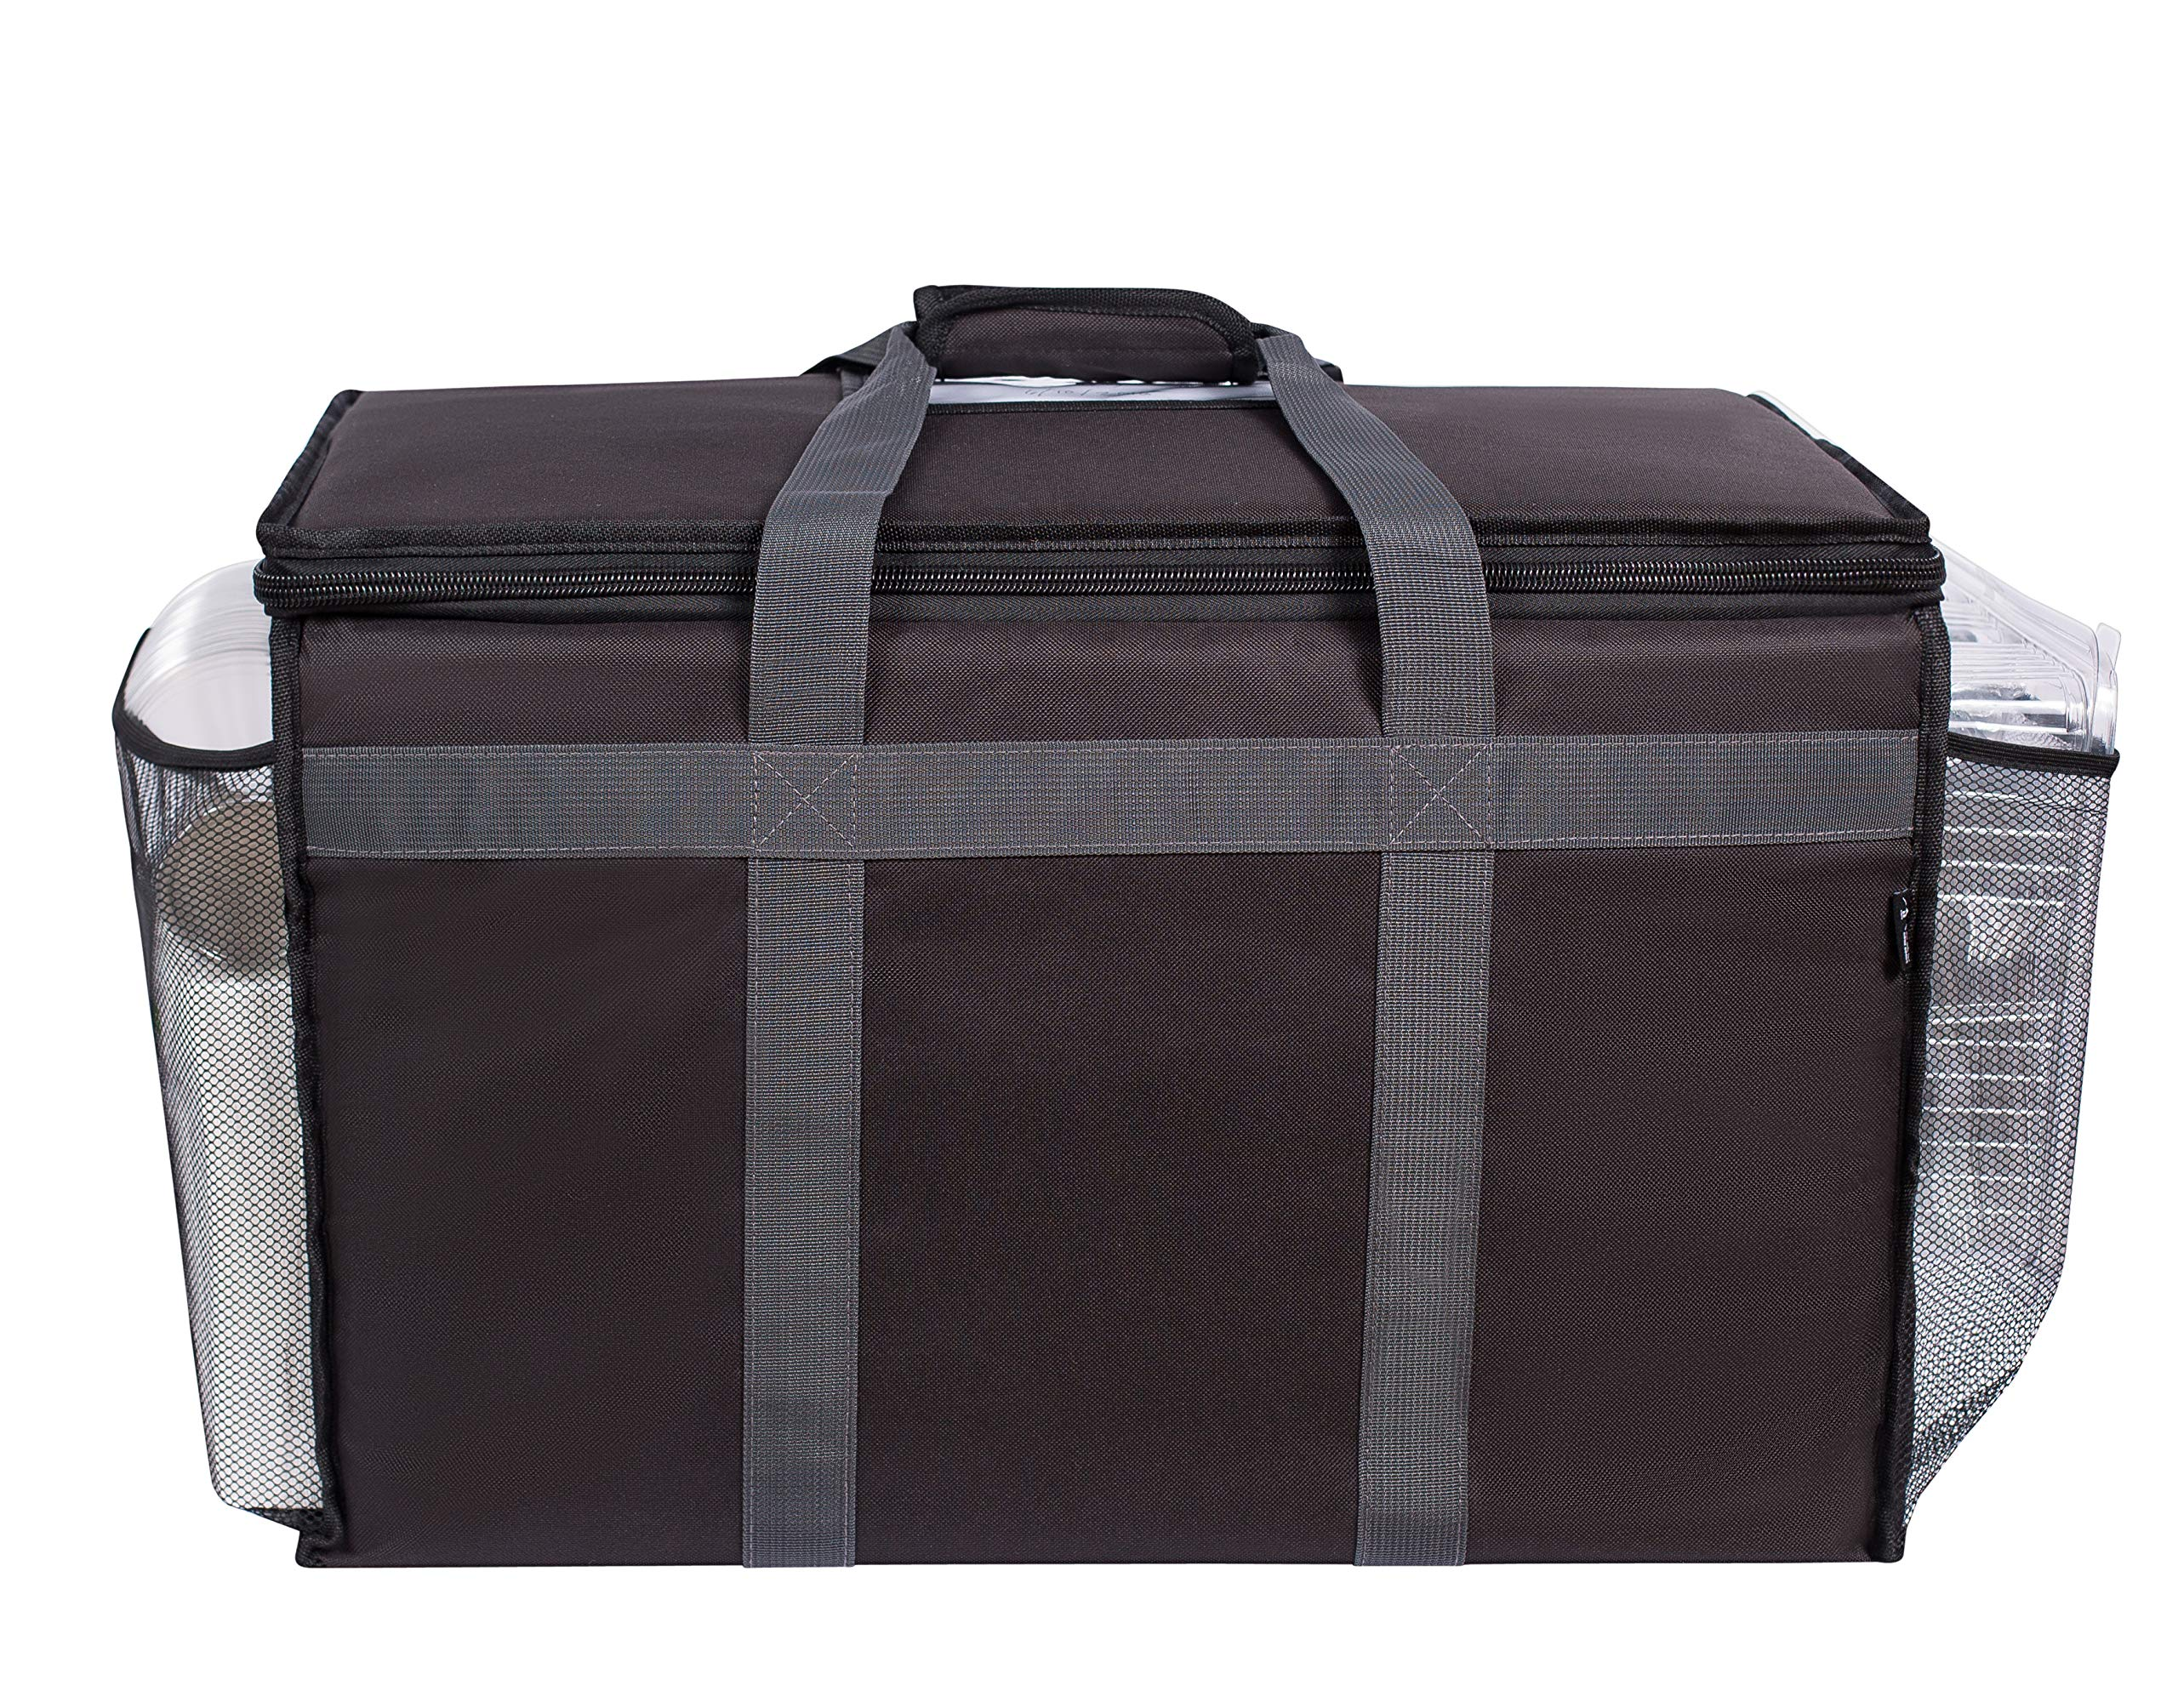 """Insulated Commercial Food Delivery Bag with Side Pockets - Professional Food Warmer Portable For Catering Hot/Cold Meals - Thick Insulation Cooler Bag For Uber Eats, Doordash, Grocery Shopping - 23"""" x"""